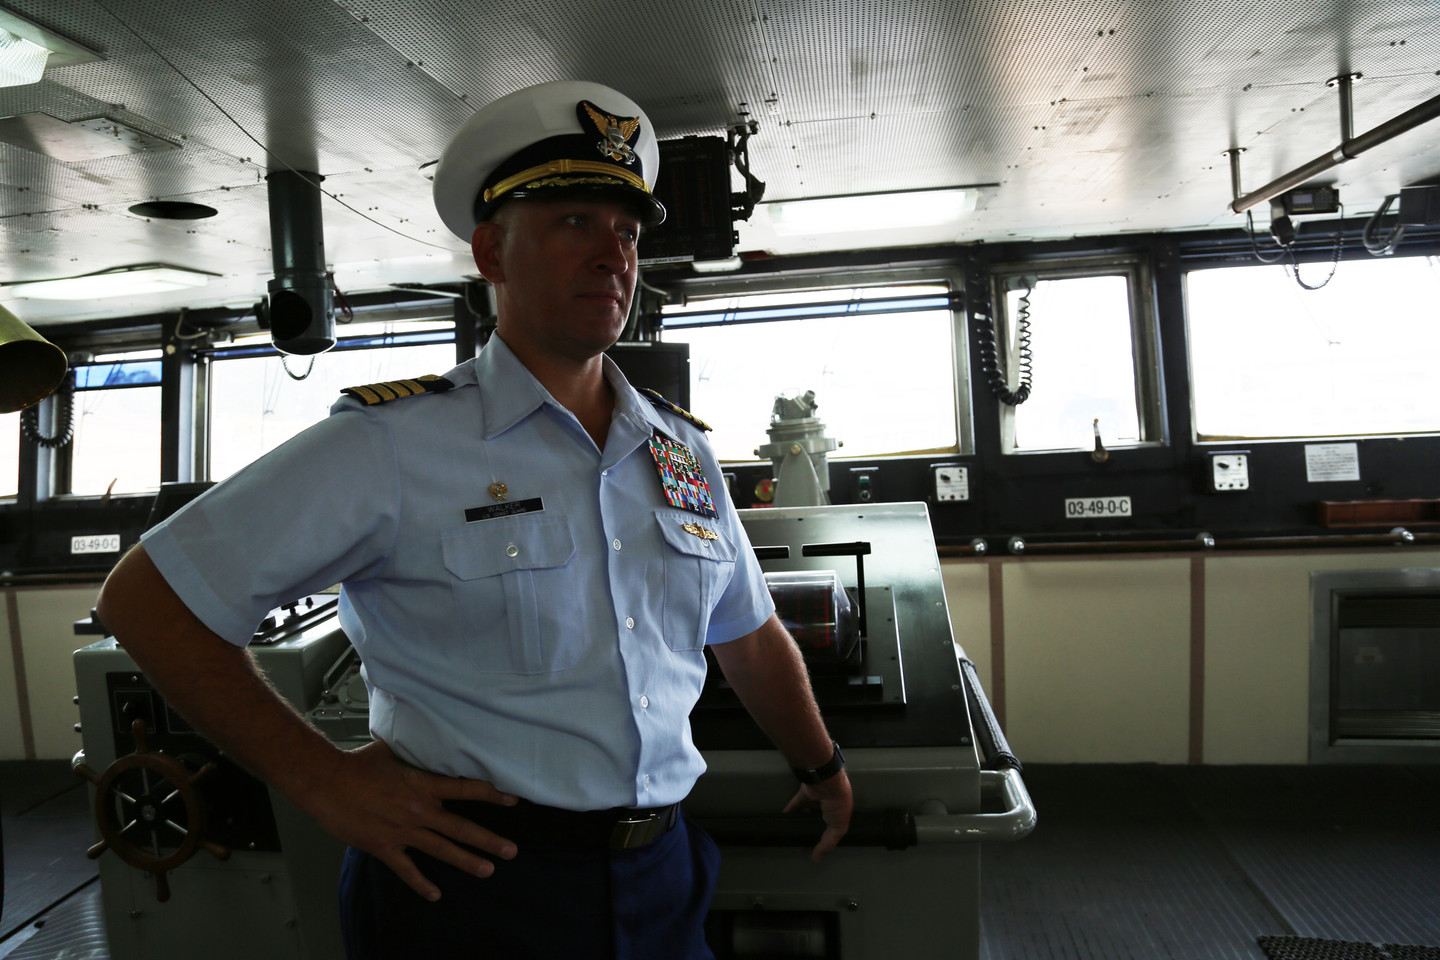 Captain Matt Walker on the bridge of the USCGC Polar Star, the only active heavy-duty icebreaker in the U.S. fleet (Adam Grossberg/KQED)